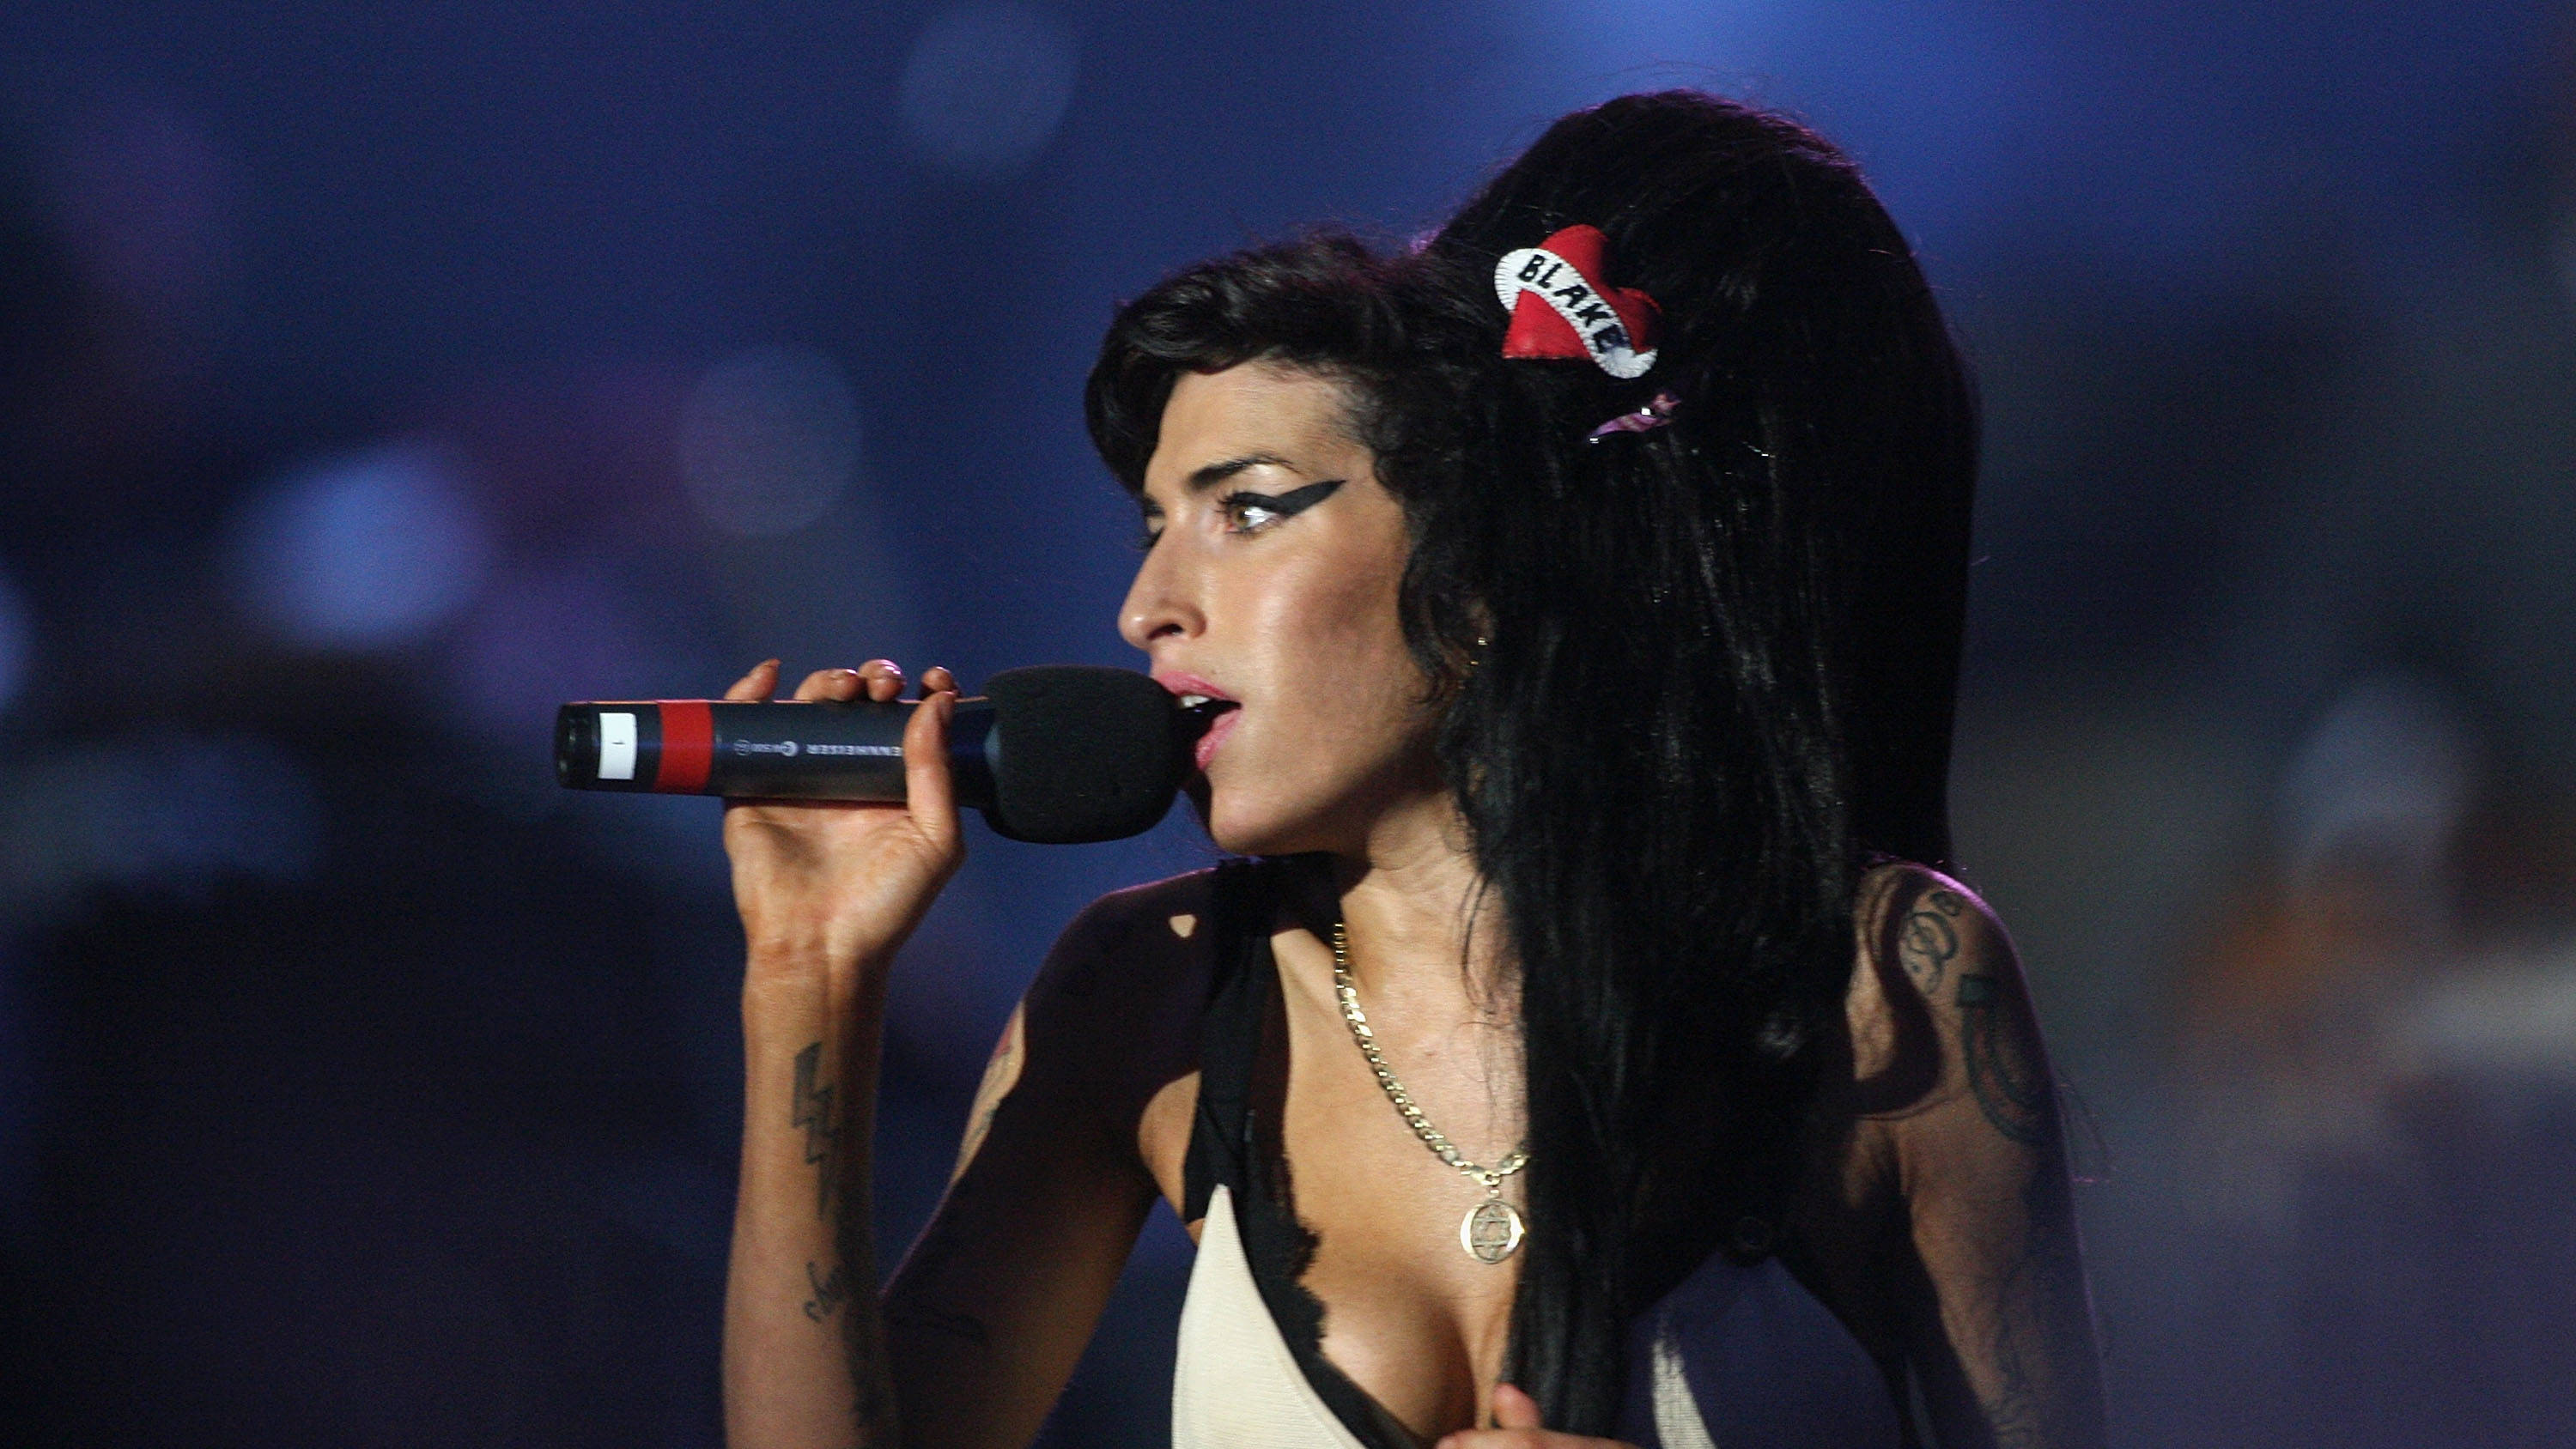 Amy winehouse most popular song